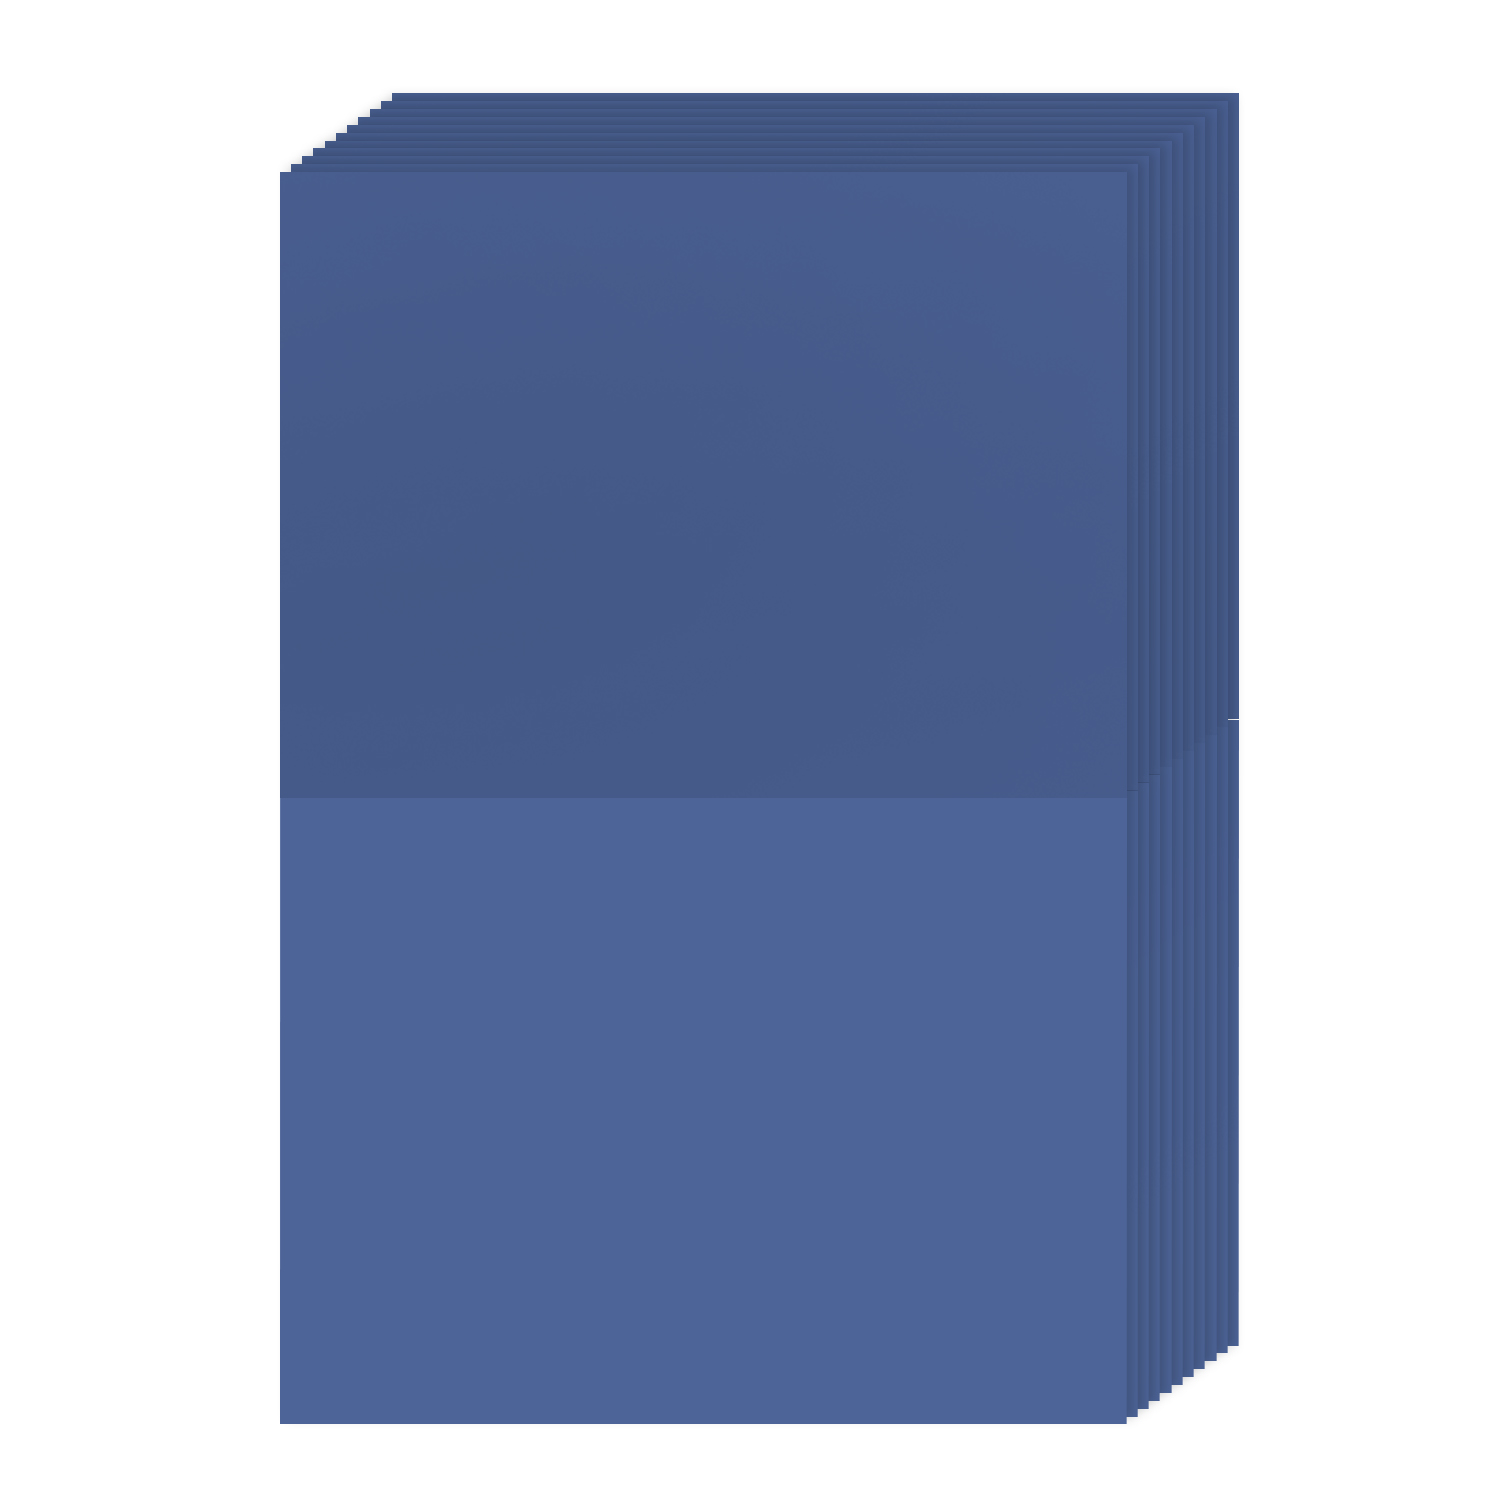 A6 Bright Color Folding Greeting Cards